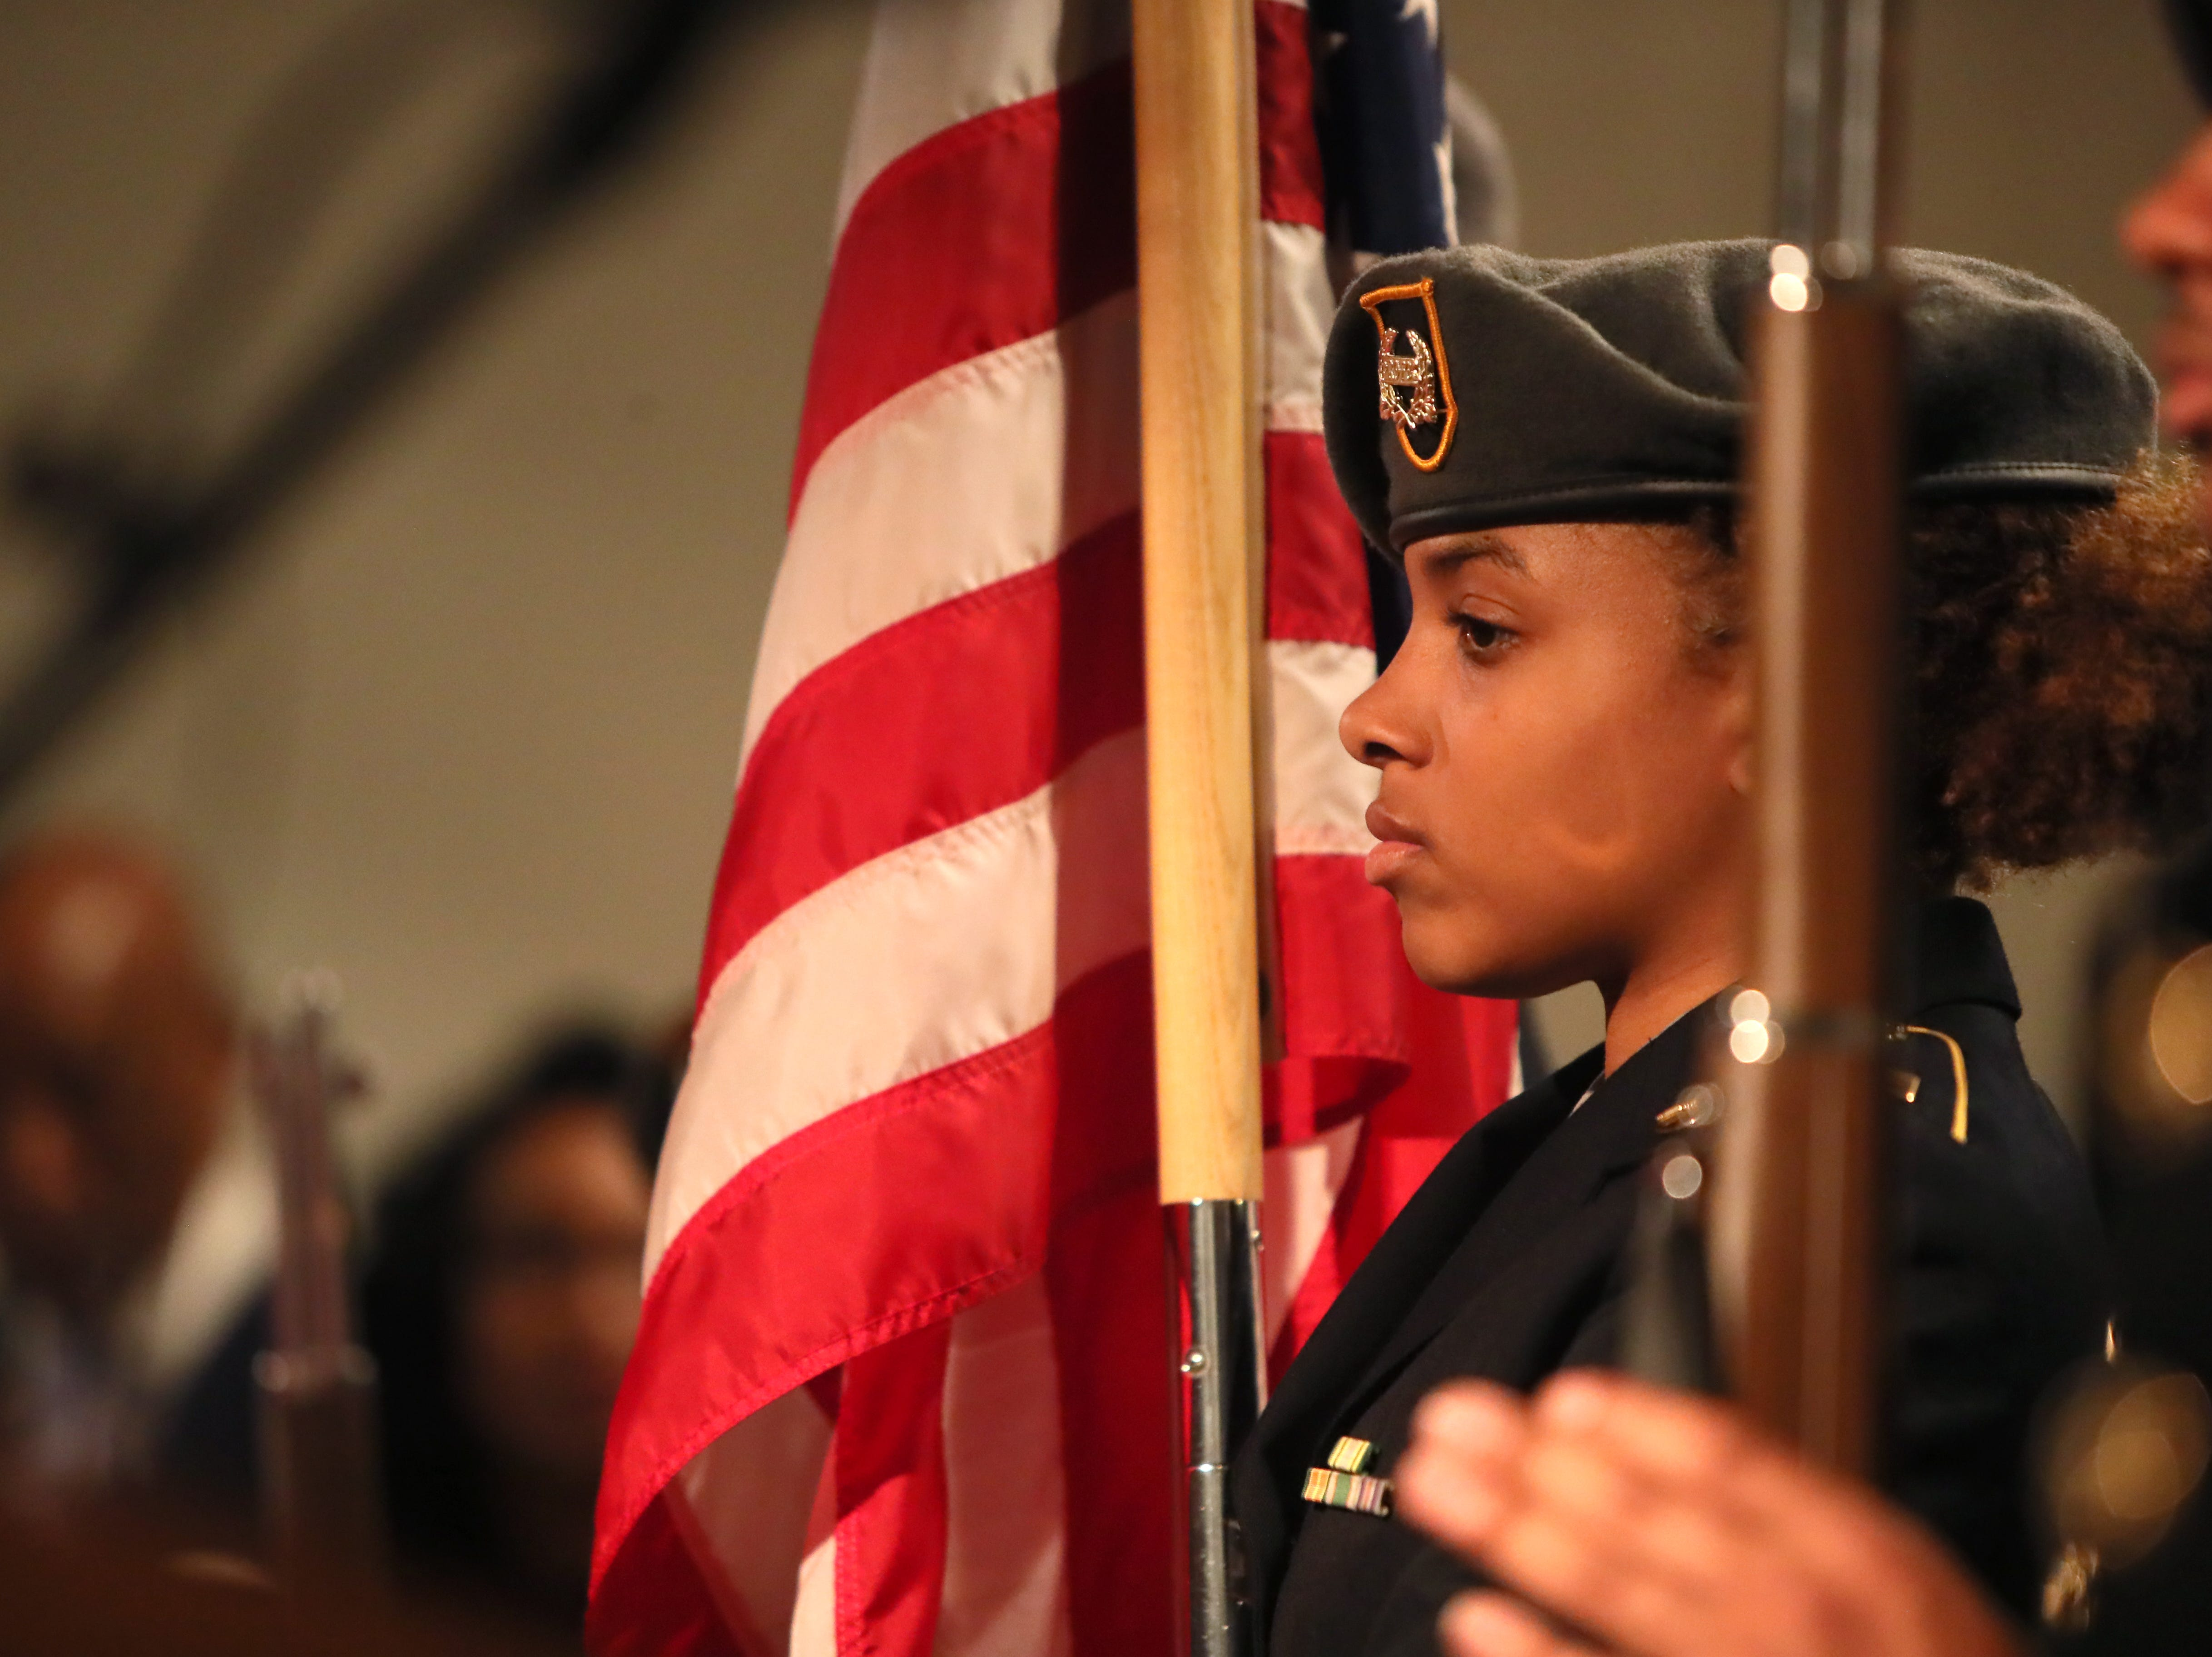 The Whitehaven High School ROTC Color Guard presents the colors during a ceremony for Phyllis Aluko, who is sworn in as Shelby County's first female chief public defender at the Walter L. Bailey, Jr. Criminal Justice Center on Tuesday, April 16, 2019.